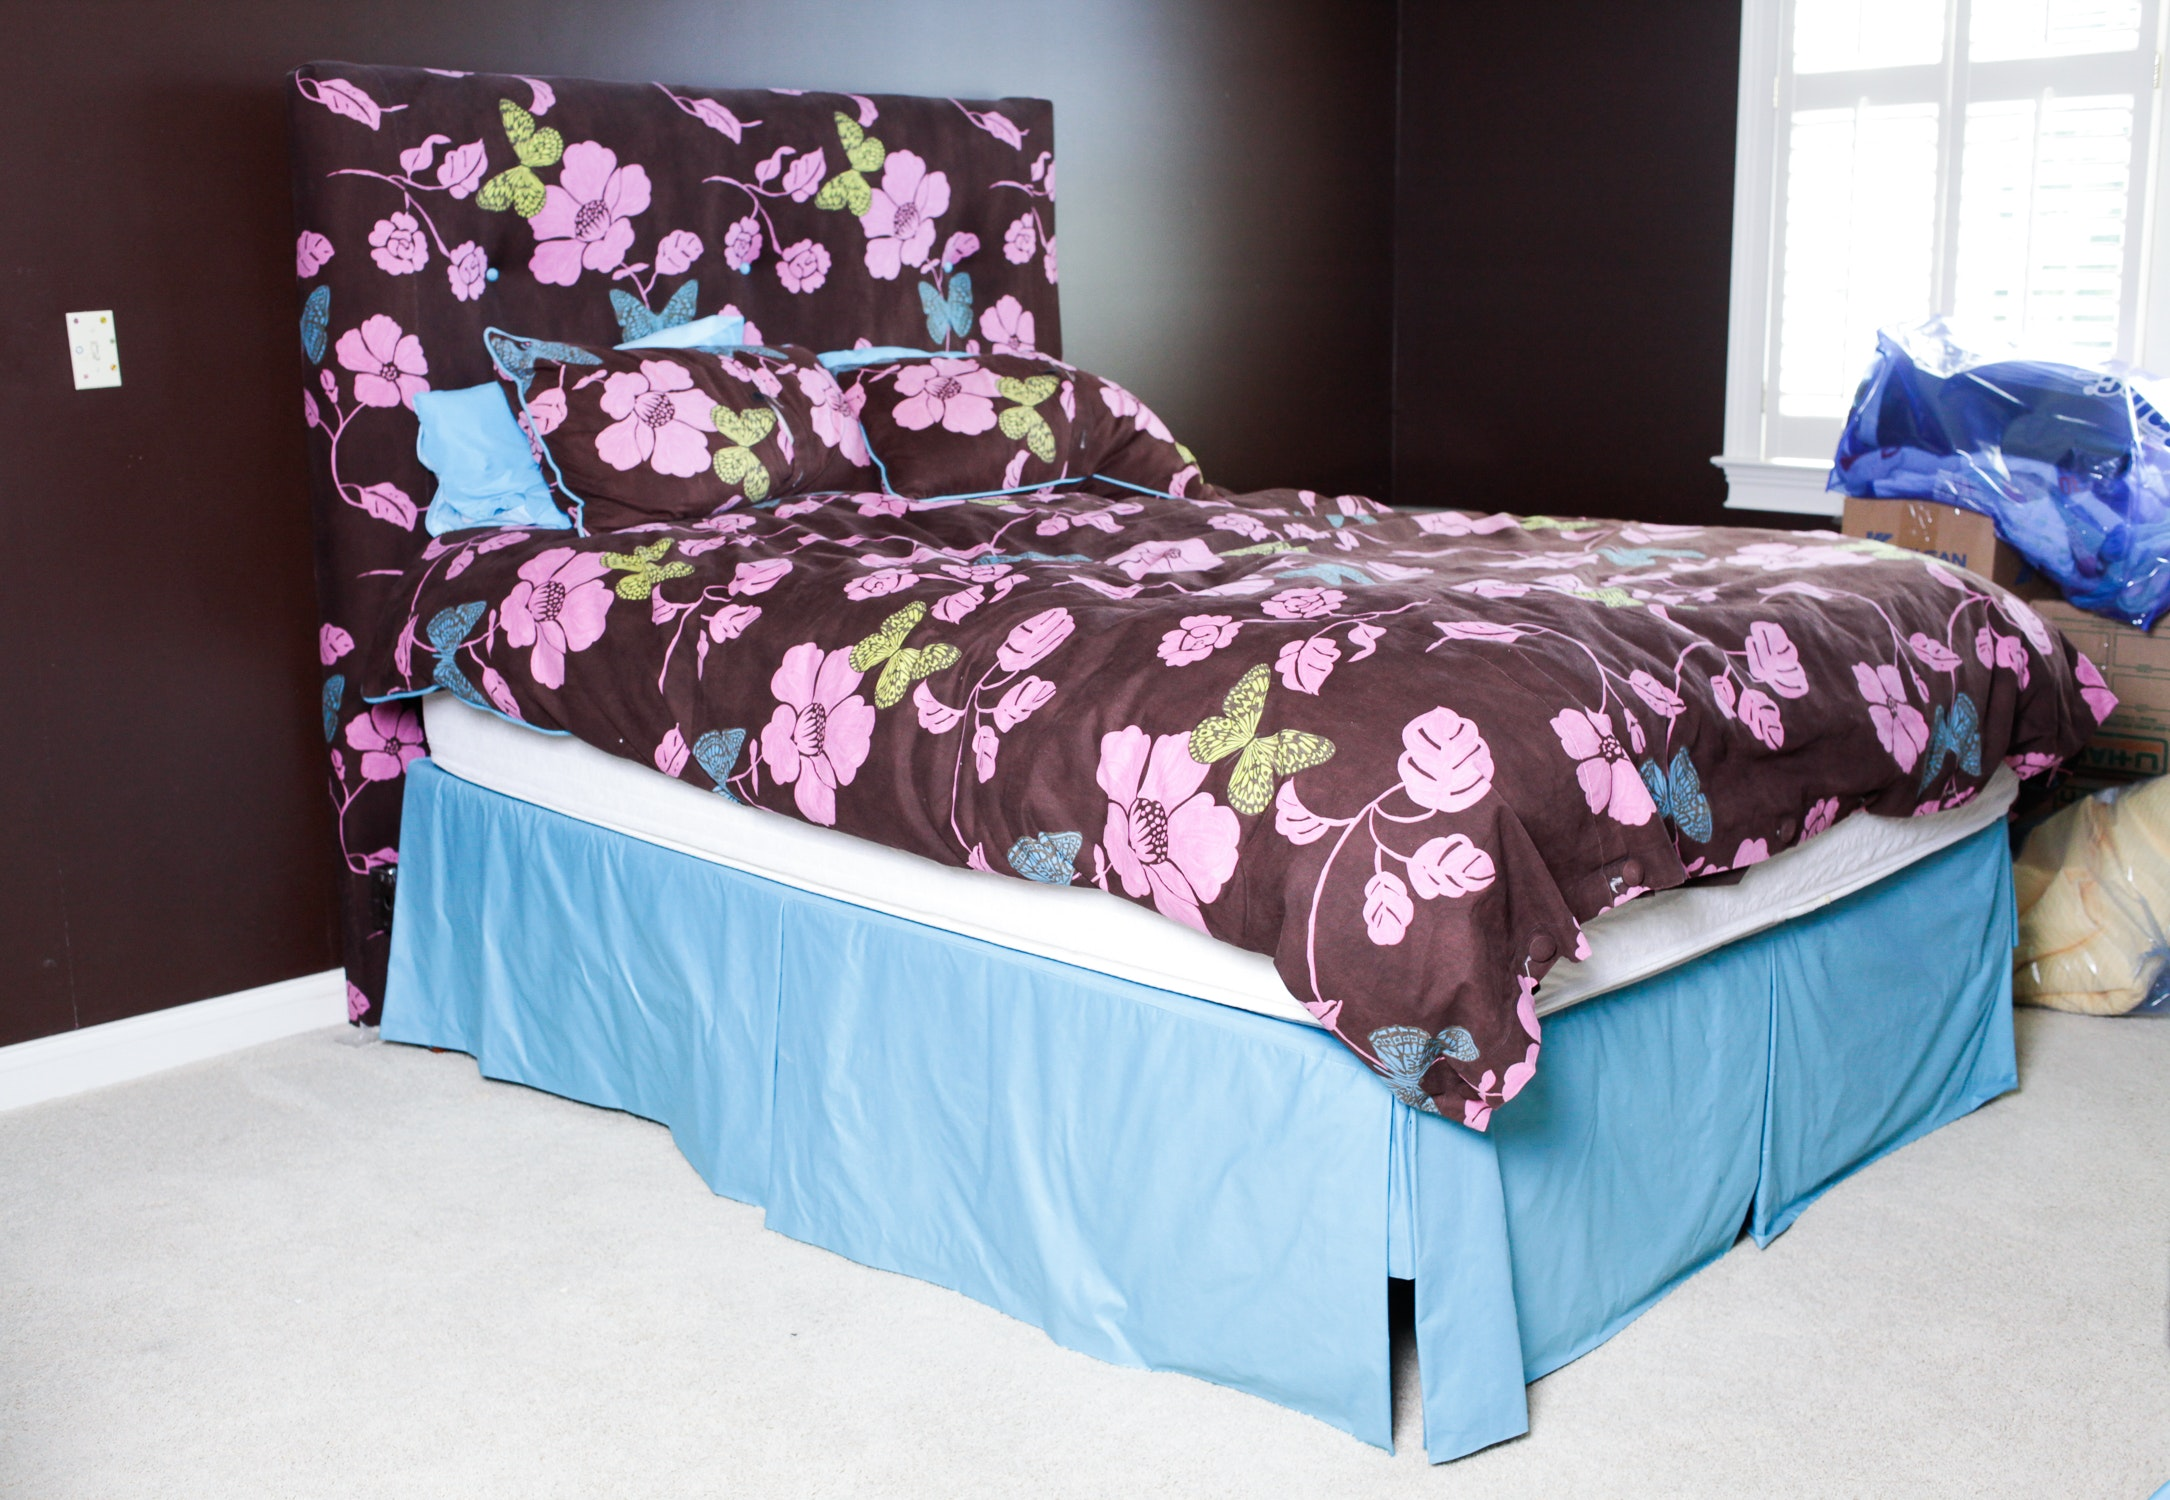 Queen Size Bed Frame And Matching Duvet